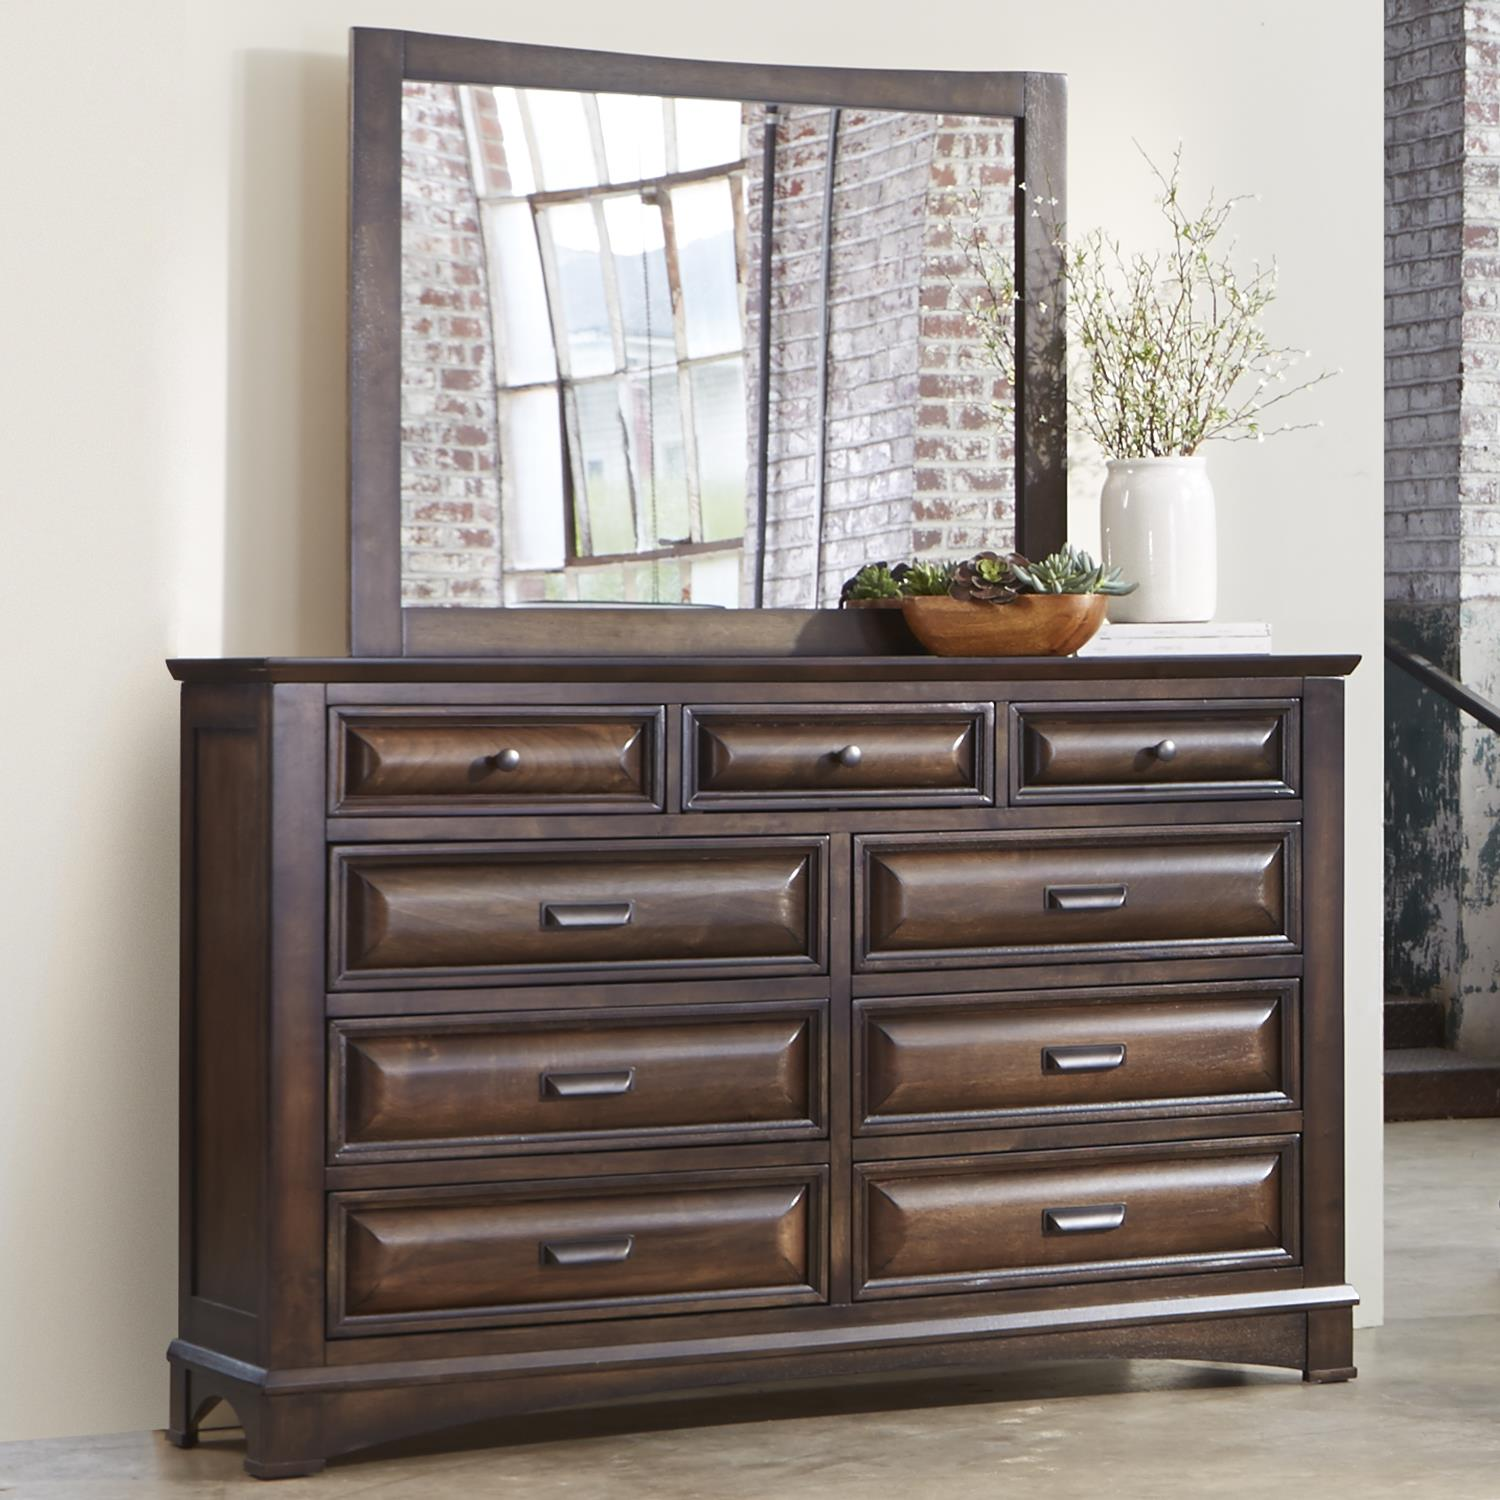 Liberty Furniture Knollwood Dresser and Mirror - Item Number: 258-BR-DM